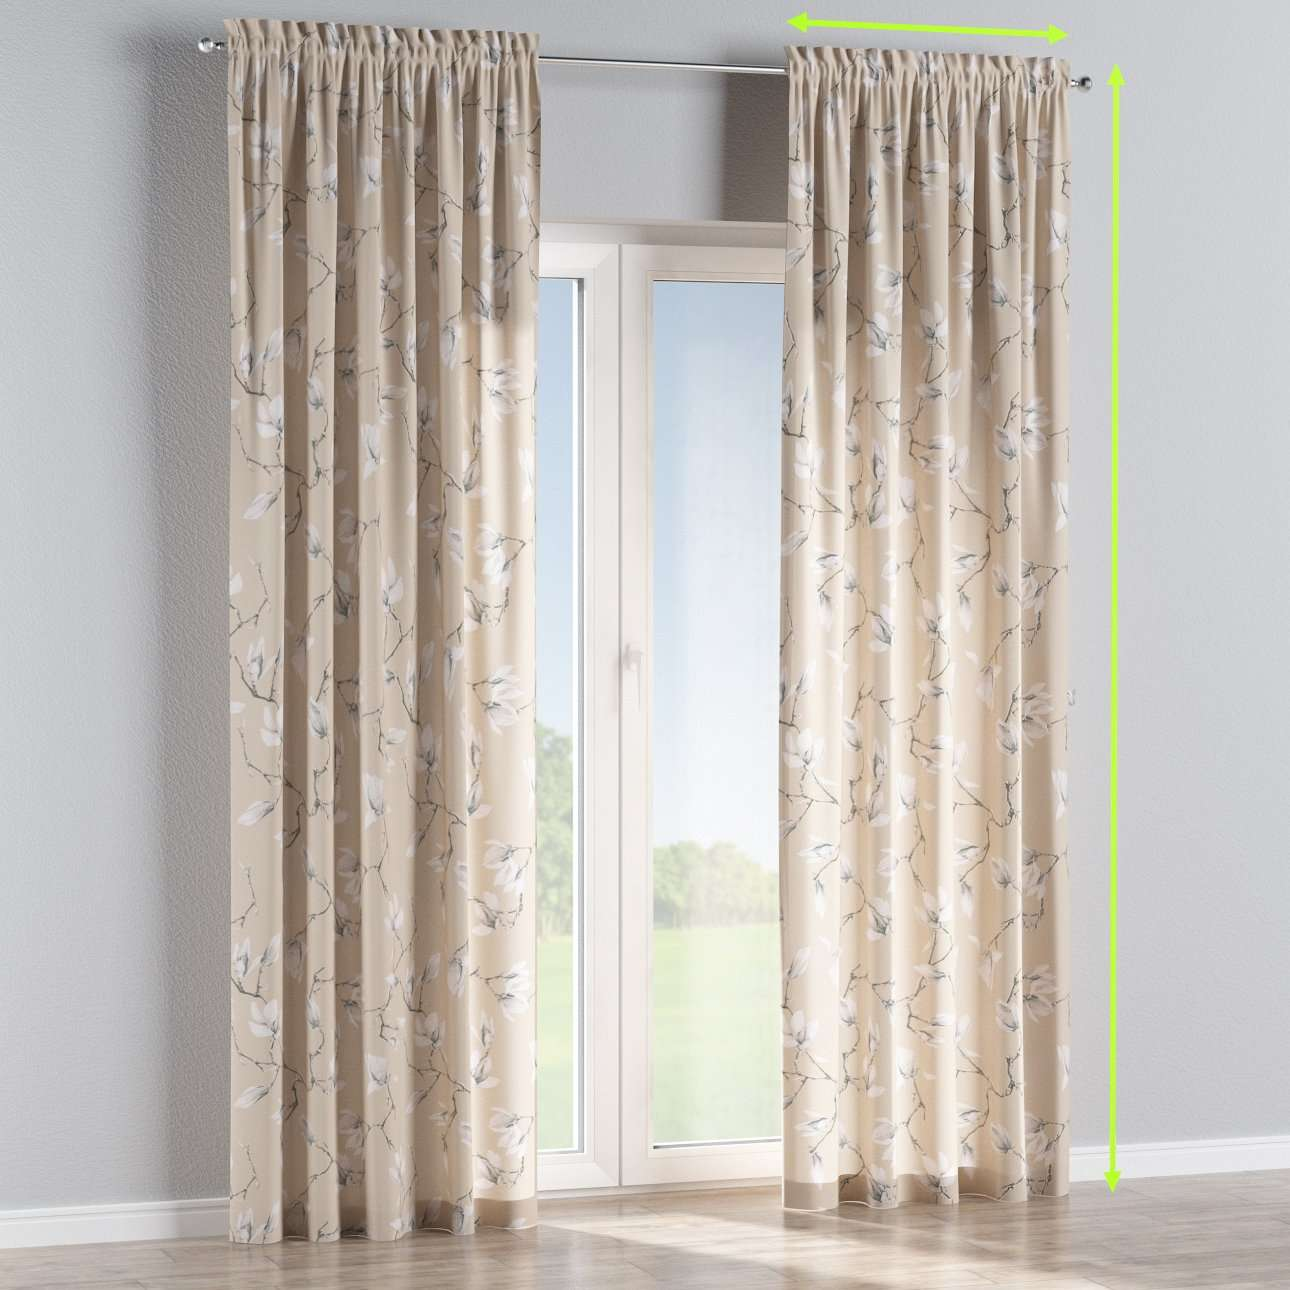 Slot and frill curtains in collection Flowers, fabric: 311-12